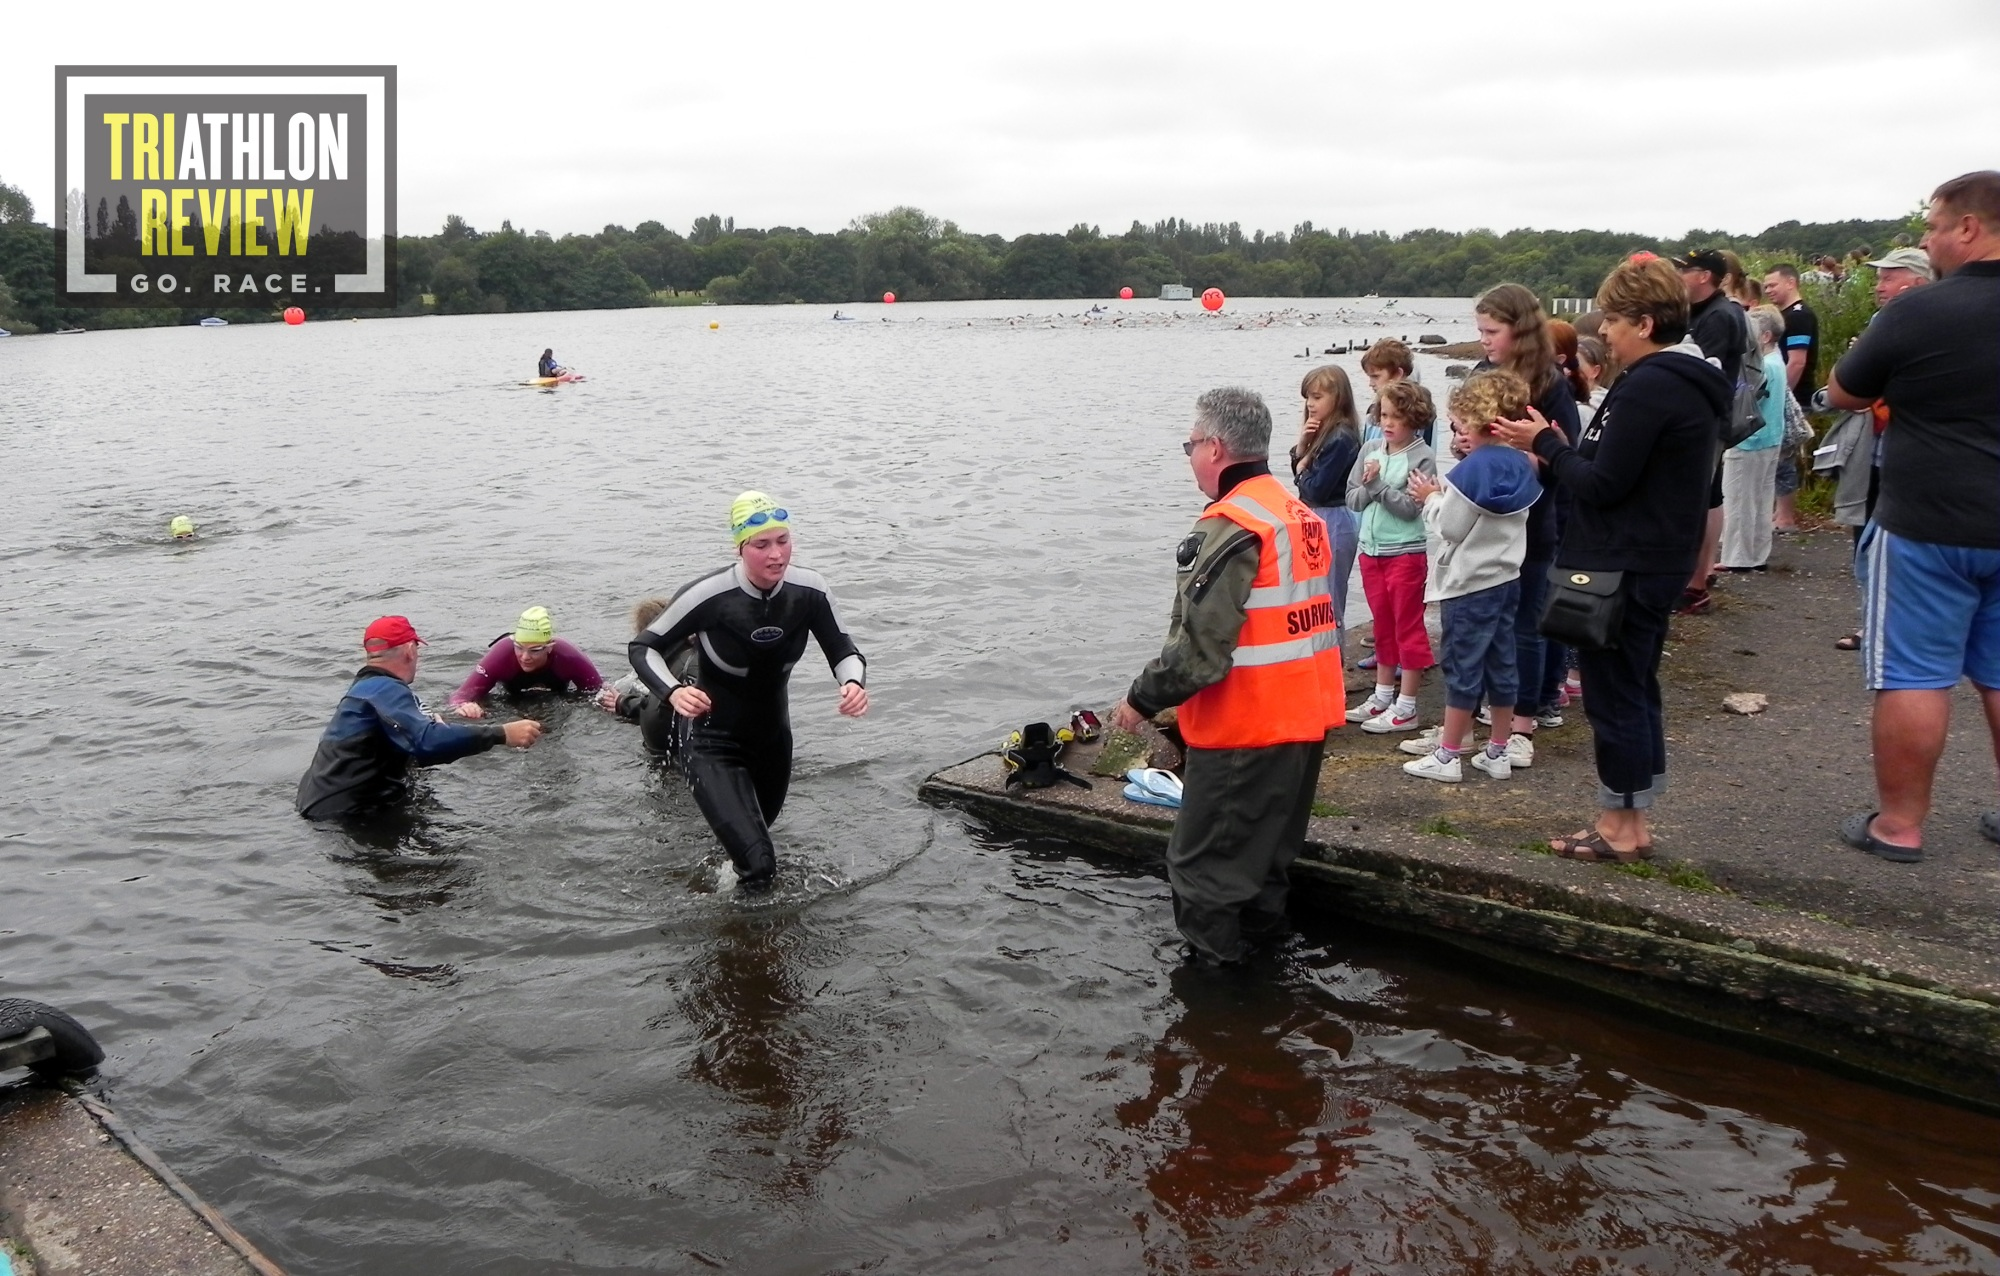 birmingham triathlon sutton park, birmingham triathlon review, birmingham triathlon advice, birmingham triathlon hills, city of birmingham triathlon, triathlon review